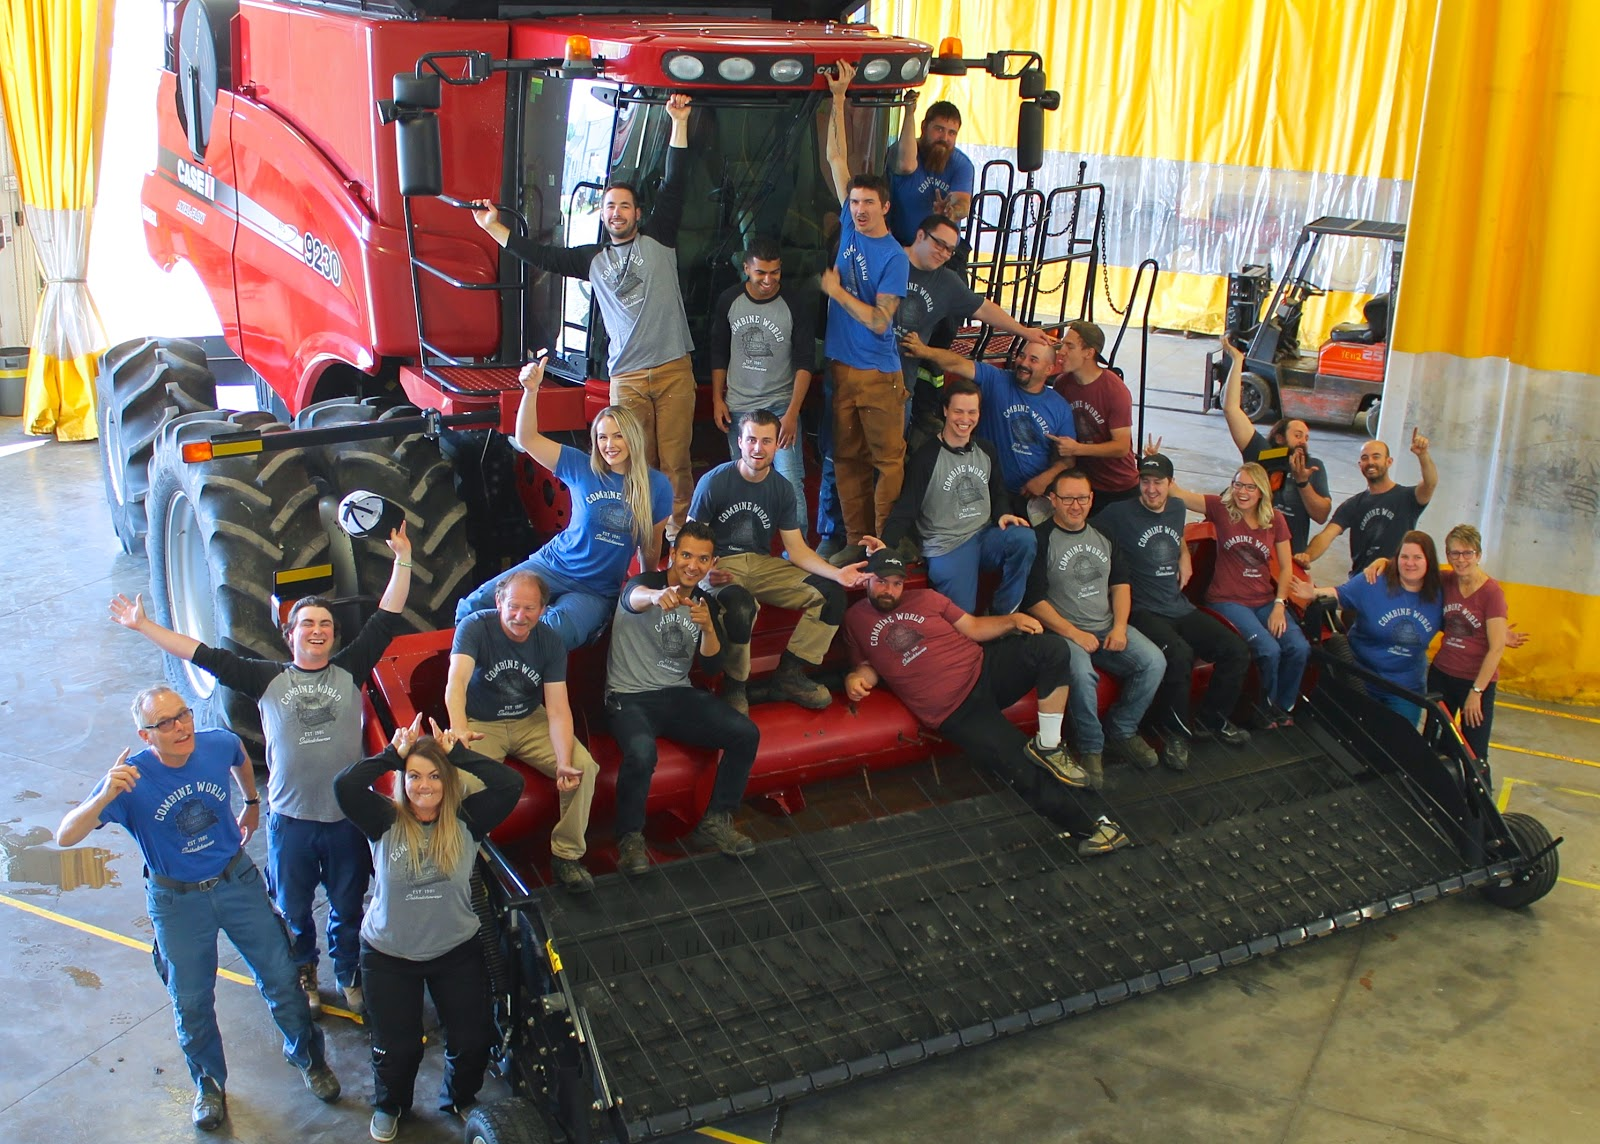 Combine World Team Picture from 2018. About two dozen people sitting on the front of a Case 9230 combine, pulling funny faces & gestures. It's a fun workplace.